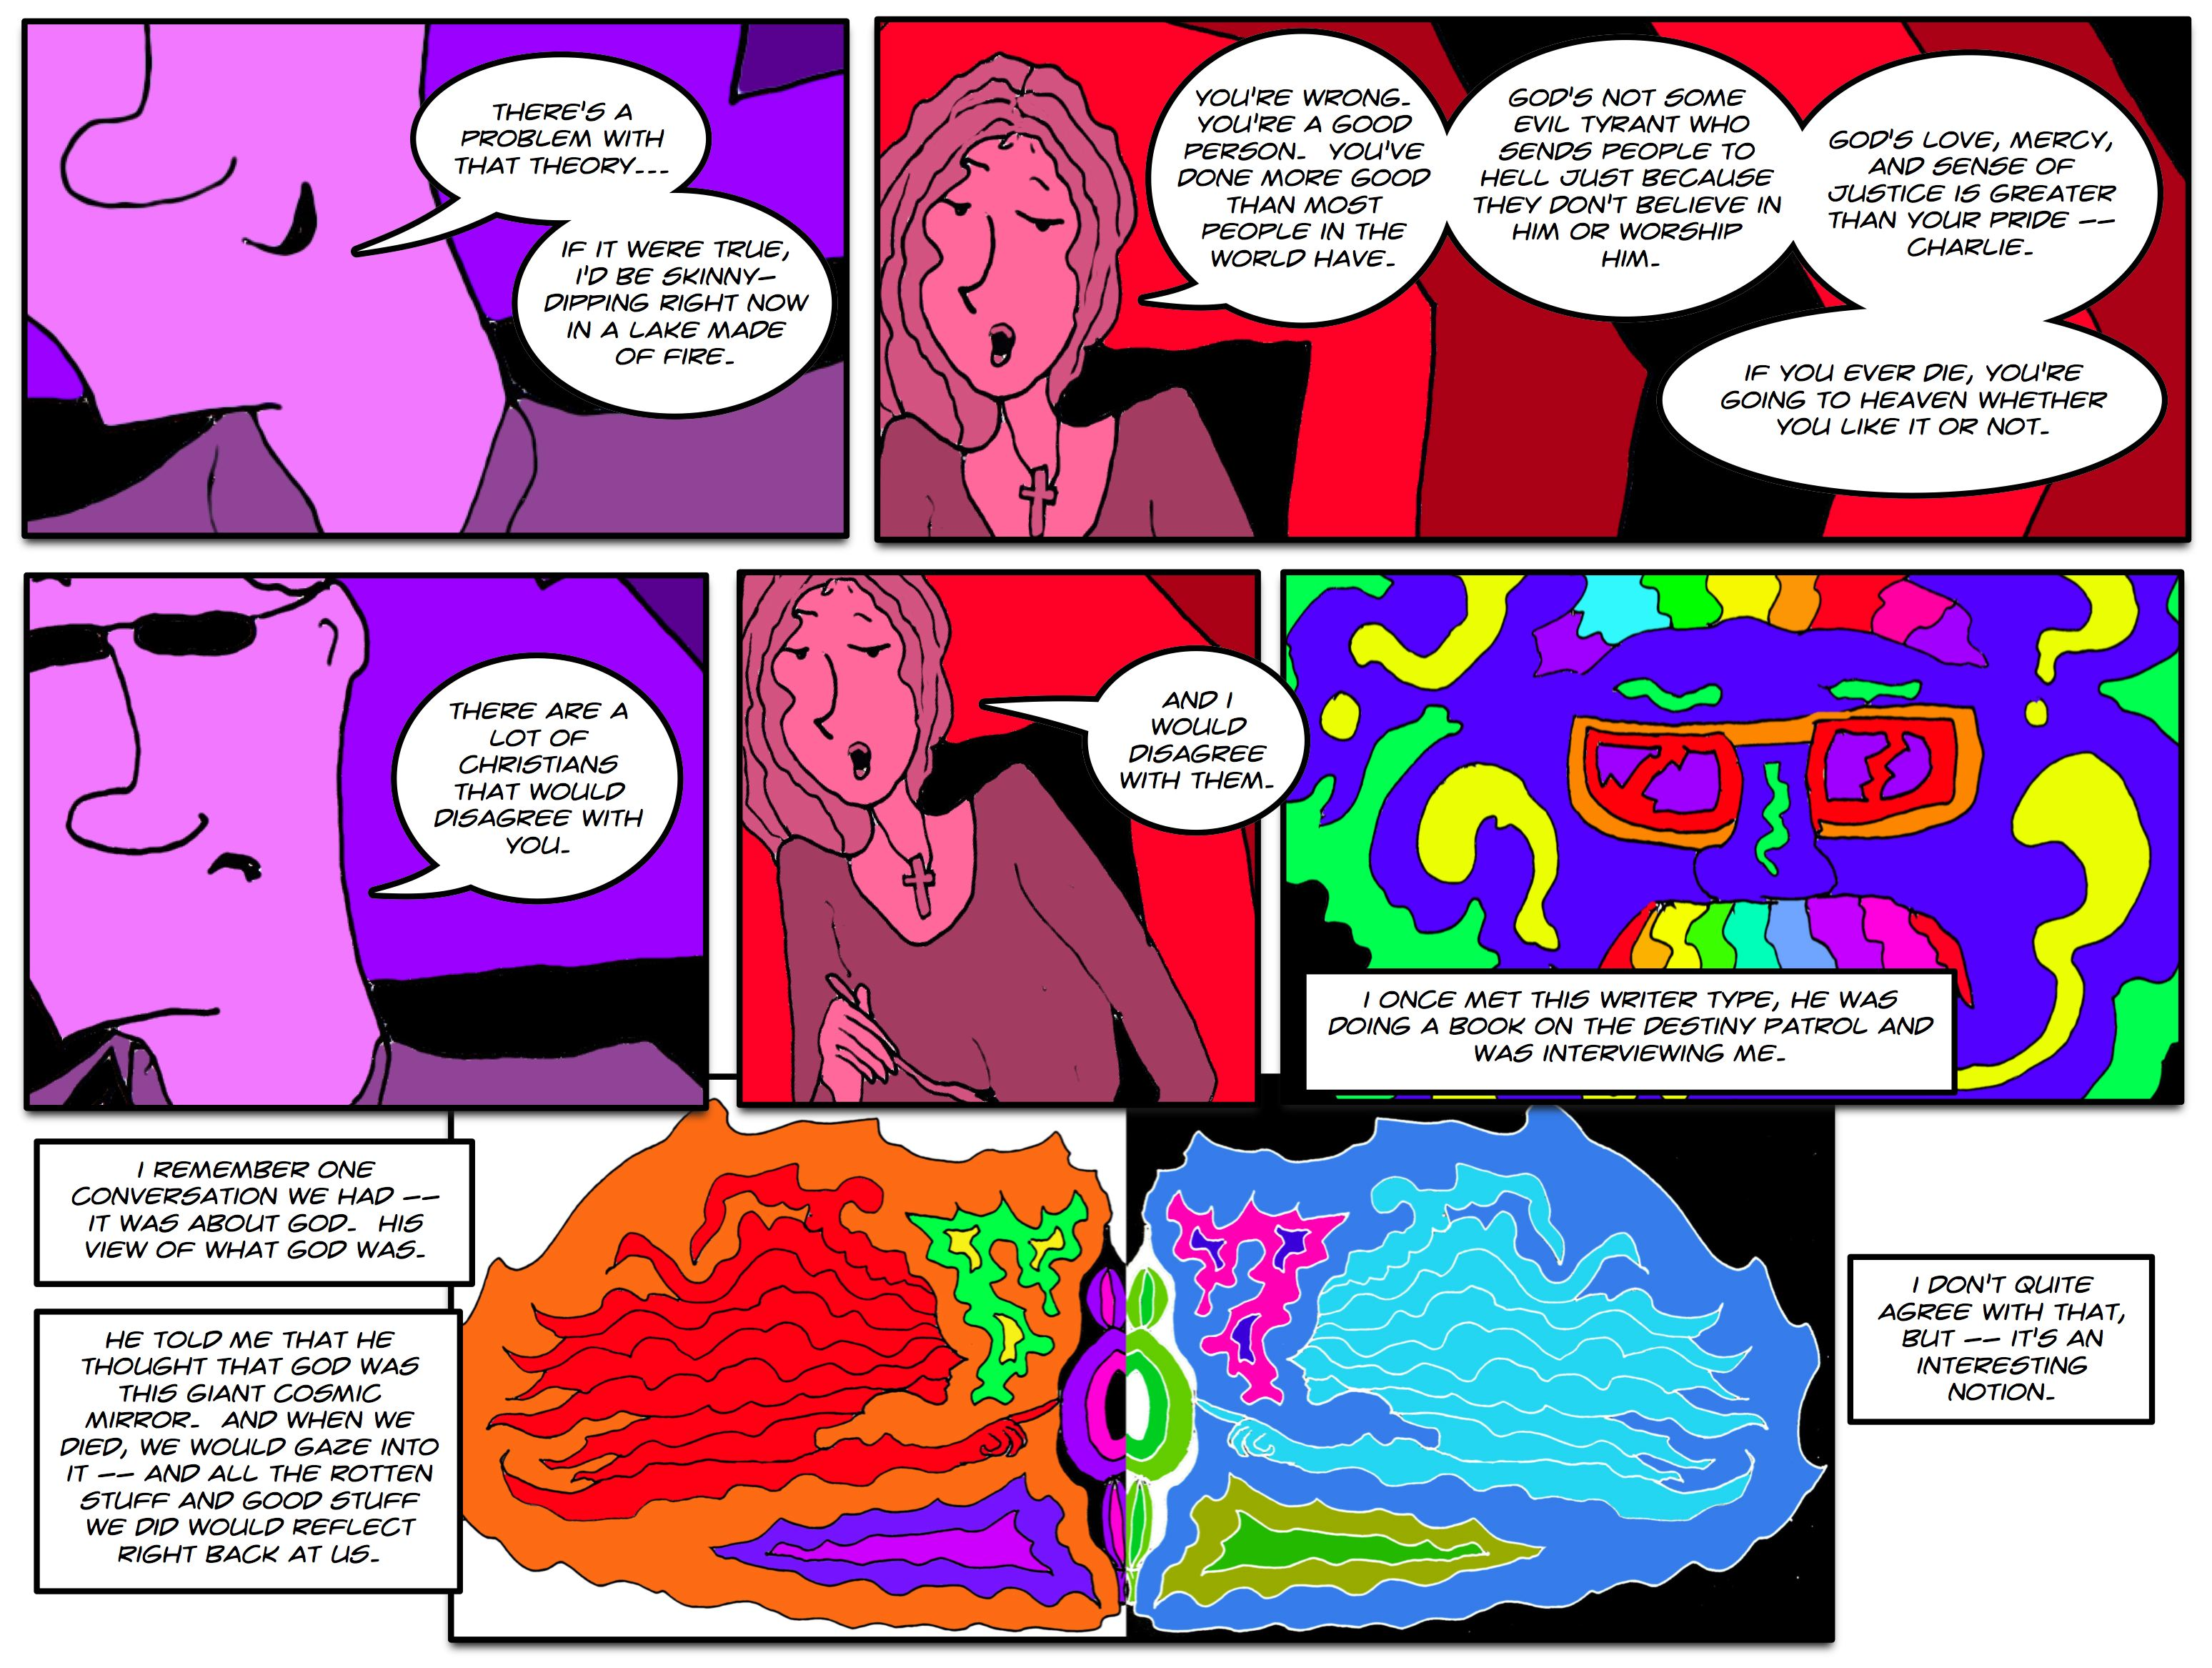 See The Electric Kool-Aid Adventures of The Mirror #45 For more info -- Edding Ed!